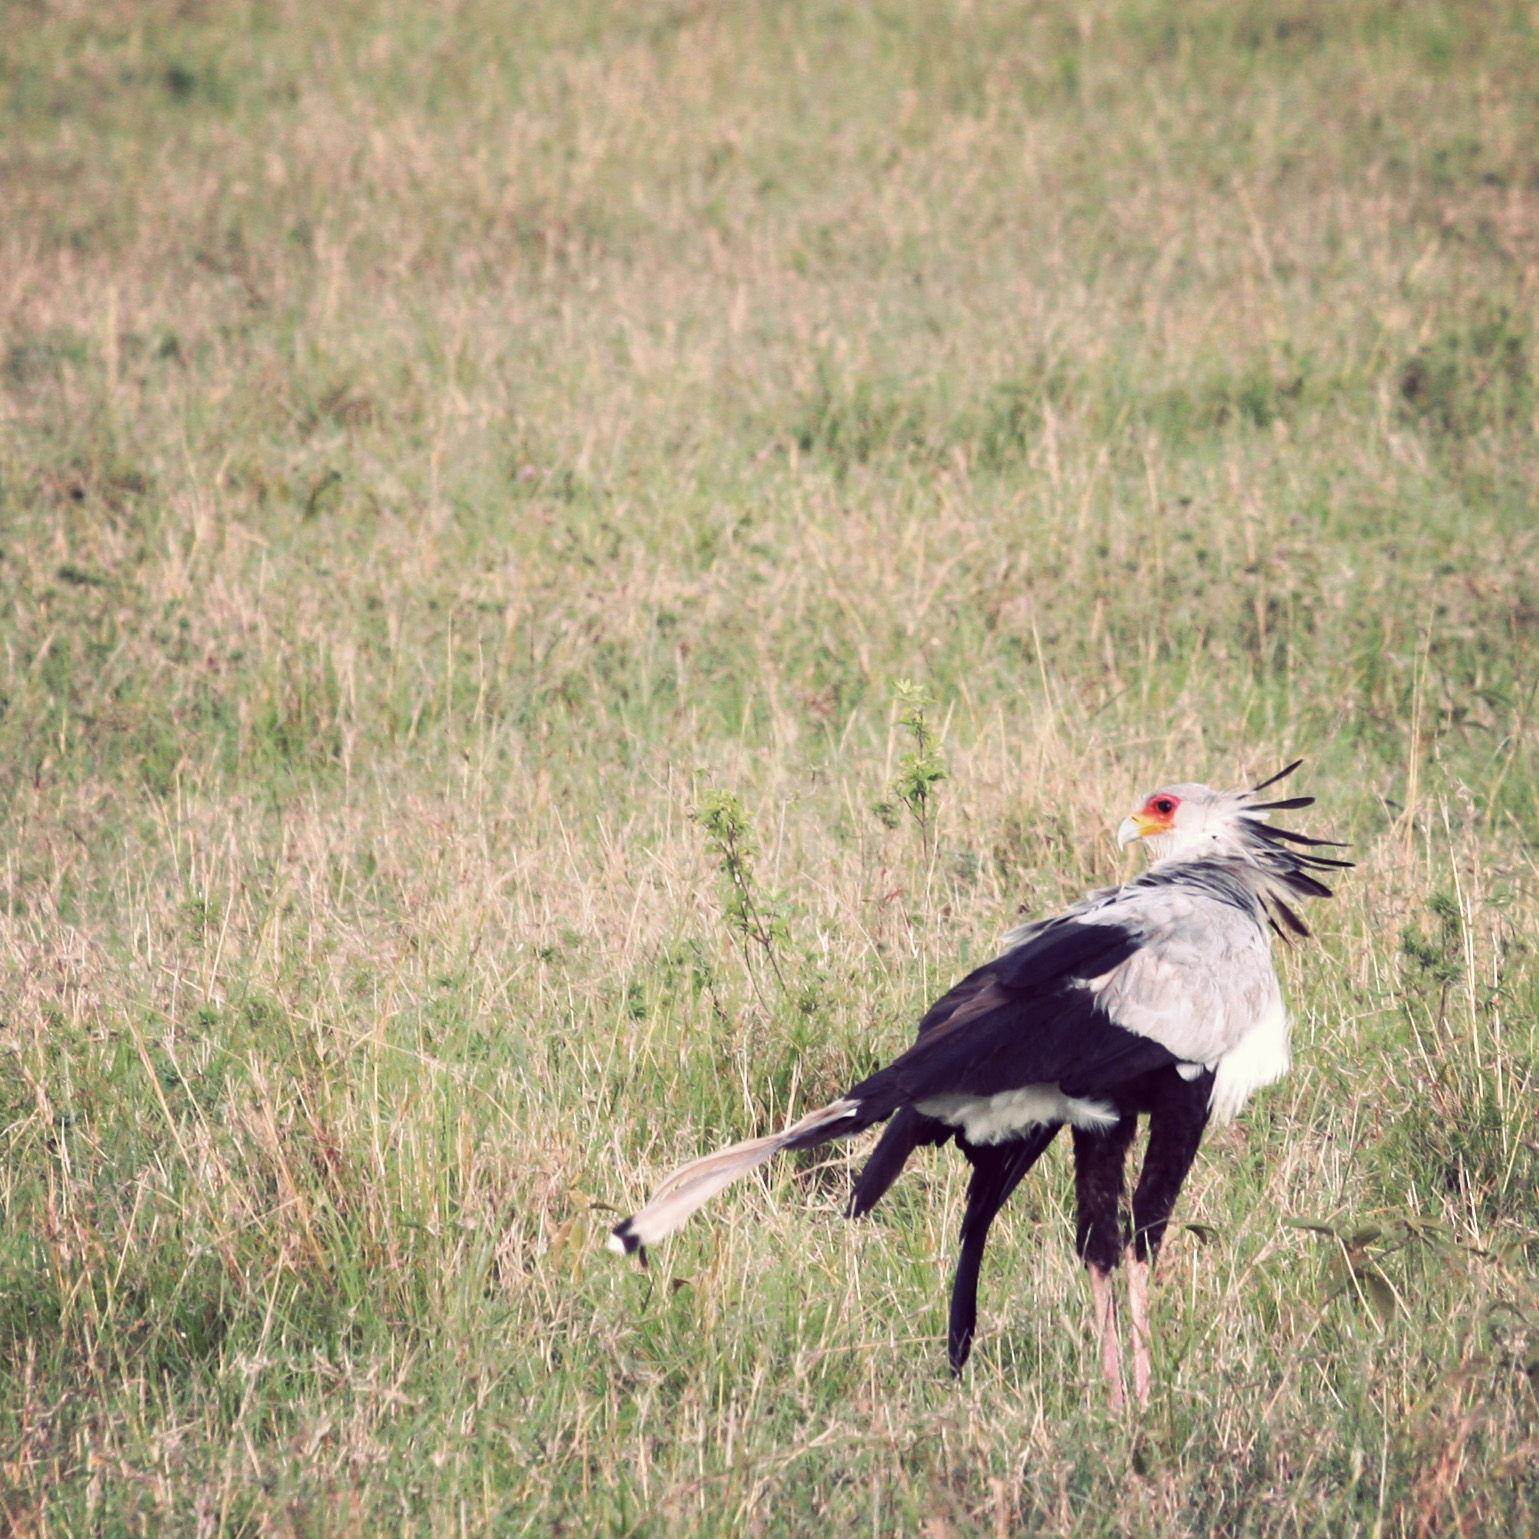 Secretary bird - so called for the plumes which look like pens coming out of his head.